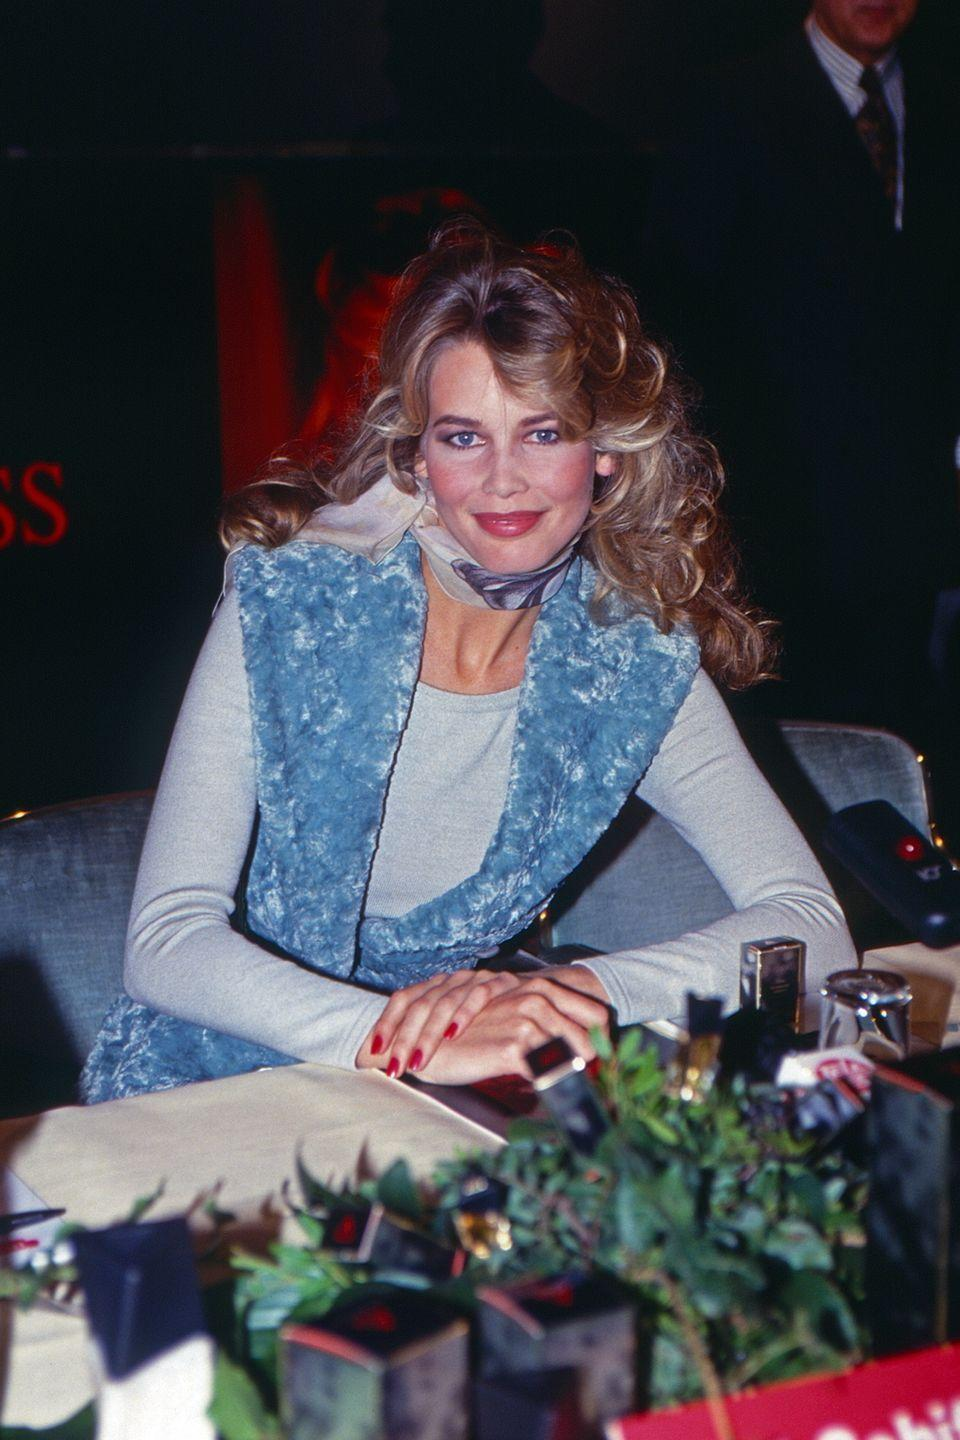 <p>Wearing Alaia for my annual calendar signing. A classic 90s look - big hair, lots of make-up and of course double denim!</p>